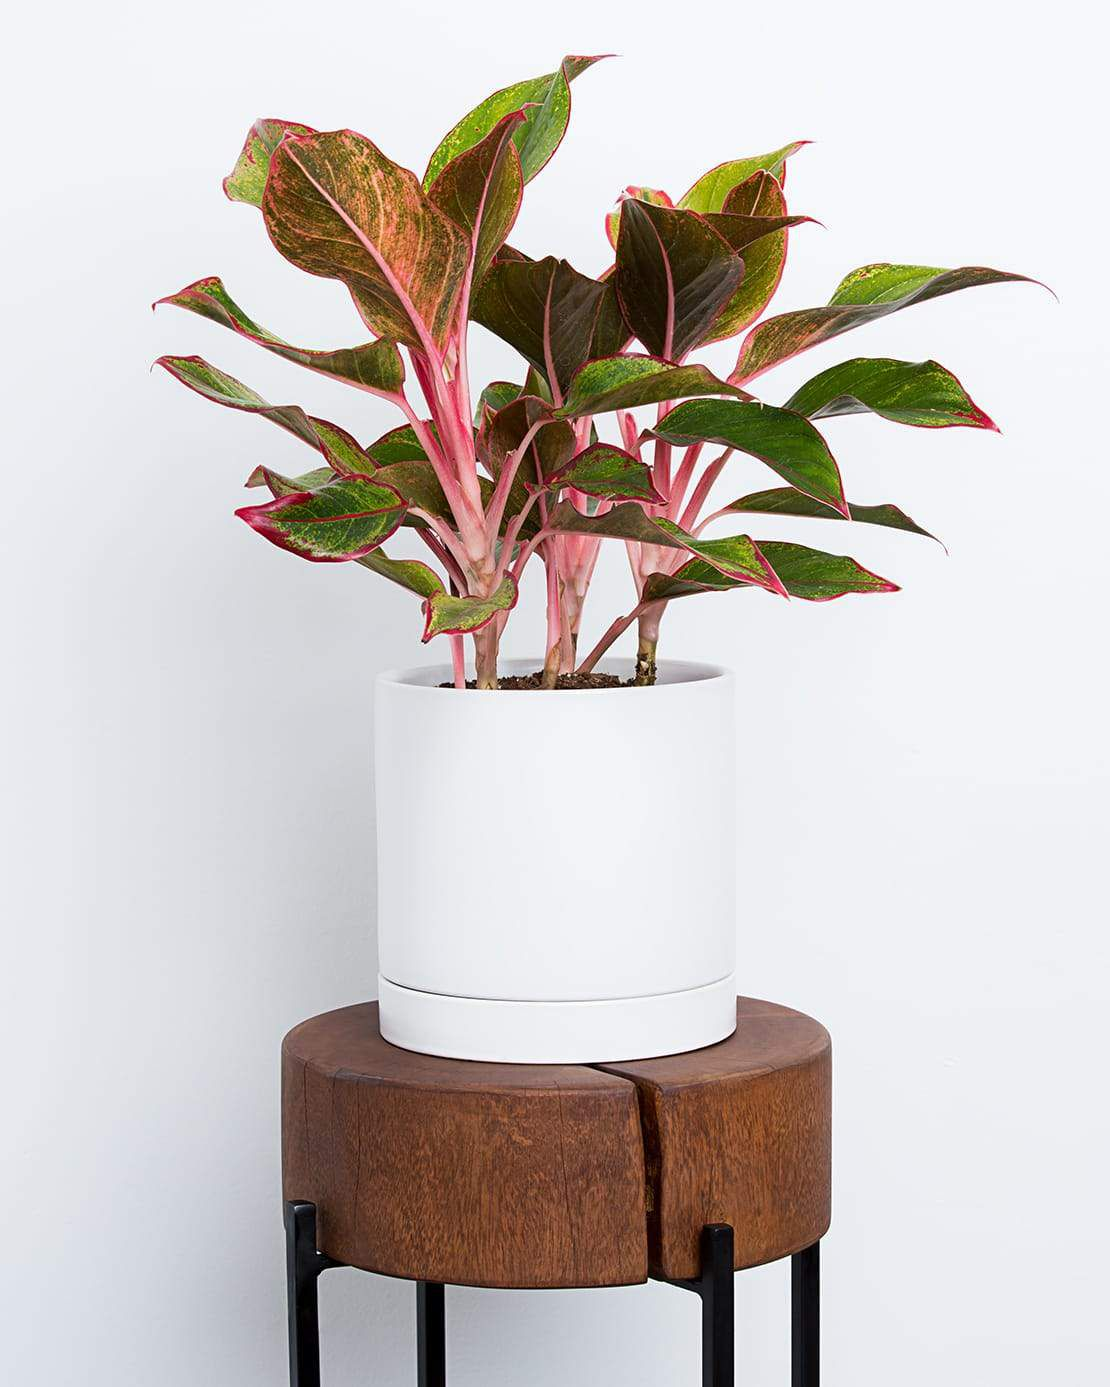 Pink and green Chinese evergreen on a wood stool